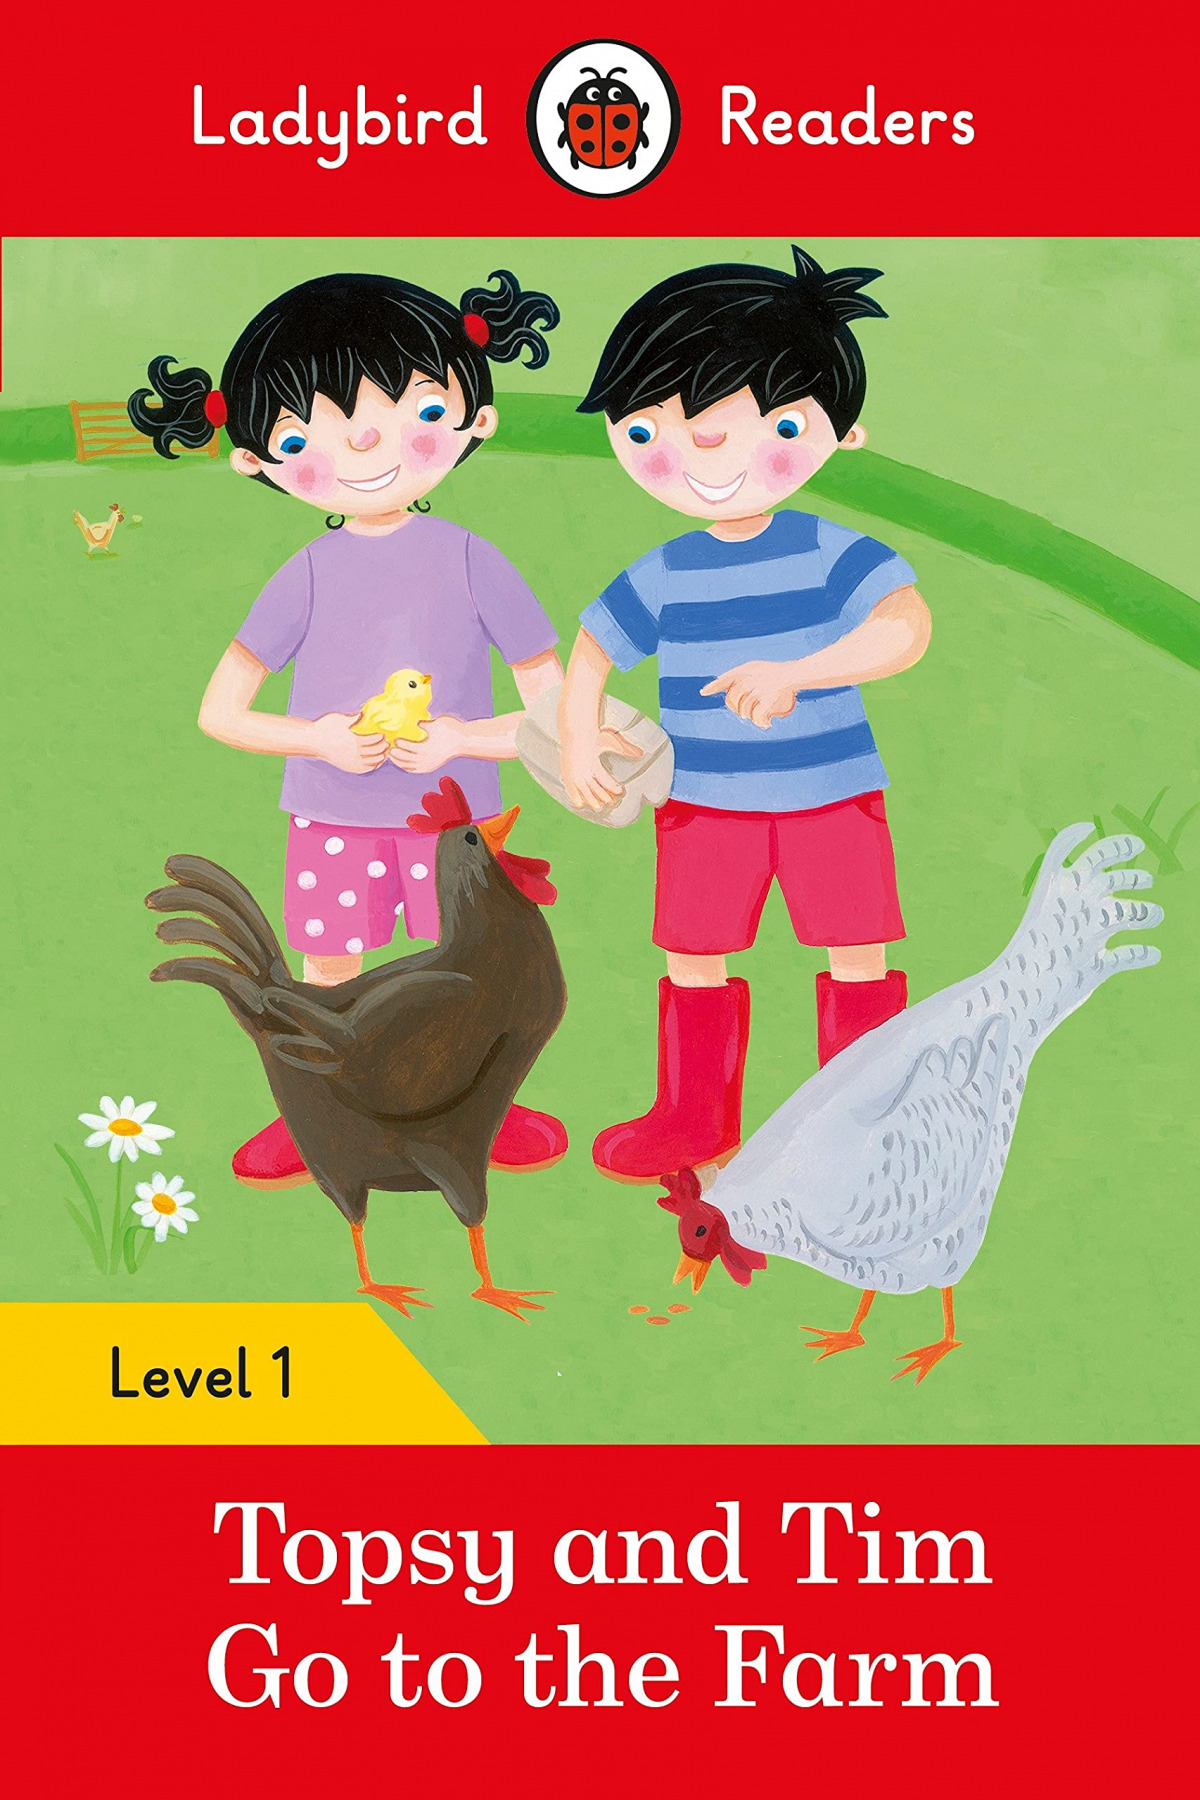 GO TO THE FARM. TOPSY AND TIM